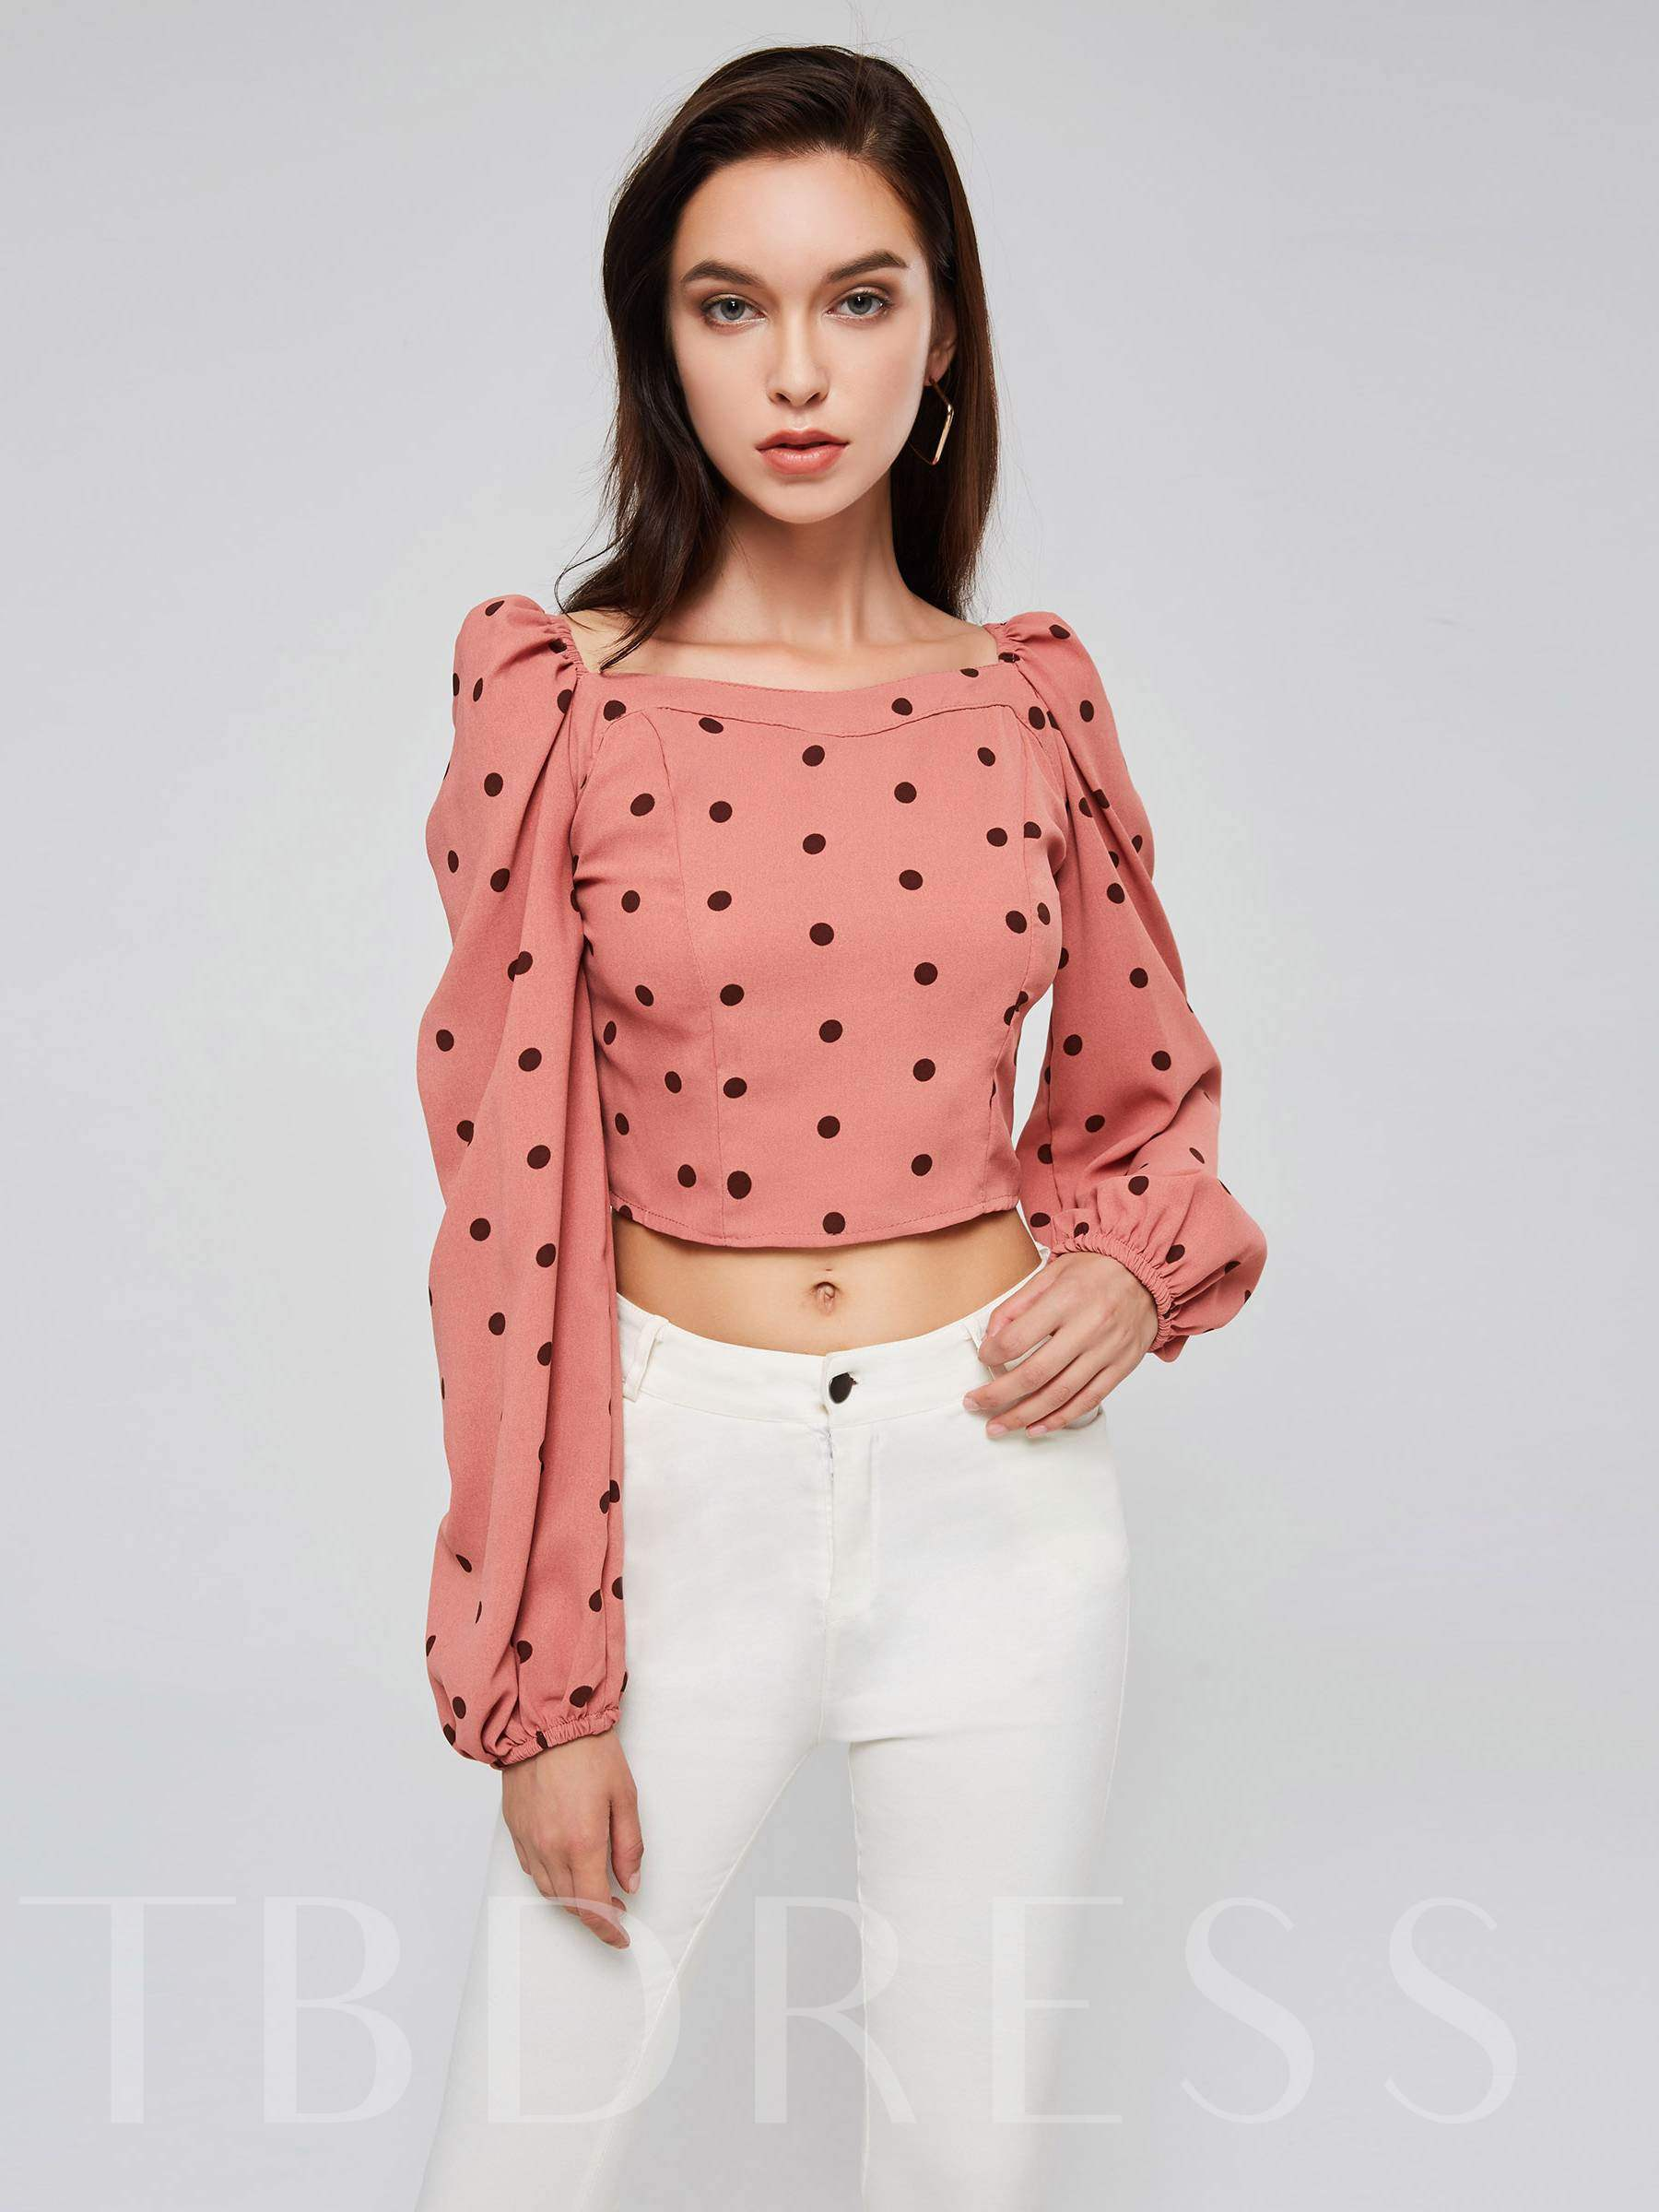 Buy Plain Polka Dots Square Neck Puff Sleeve Women's Blouse, Spring,Summer,Fall, 13397011 for $9.56 in TBDress store